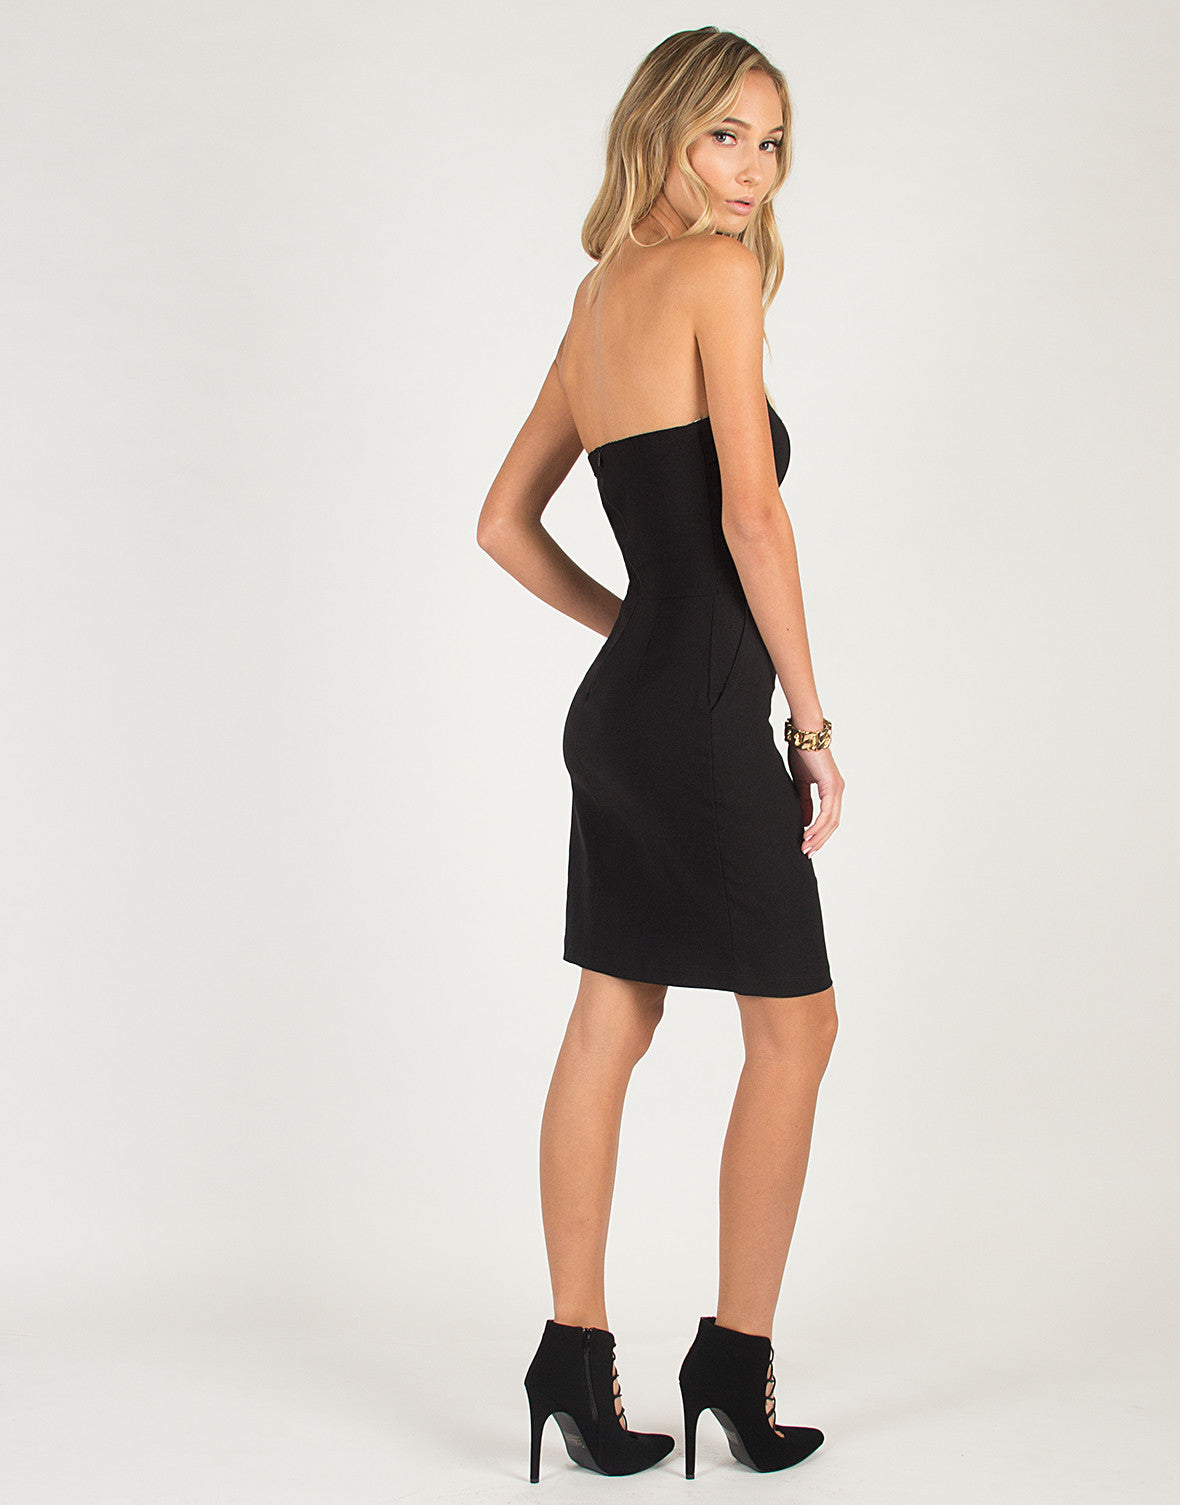 Strapless Bow Tie Dress - Black